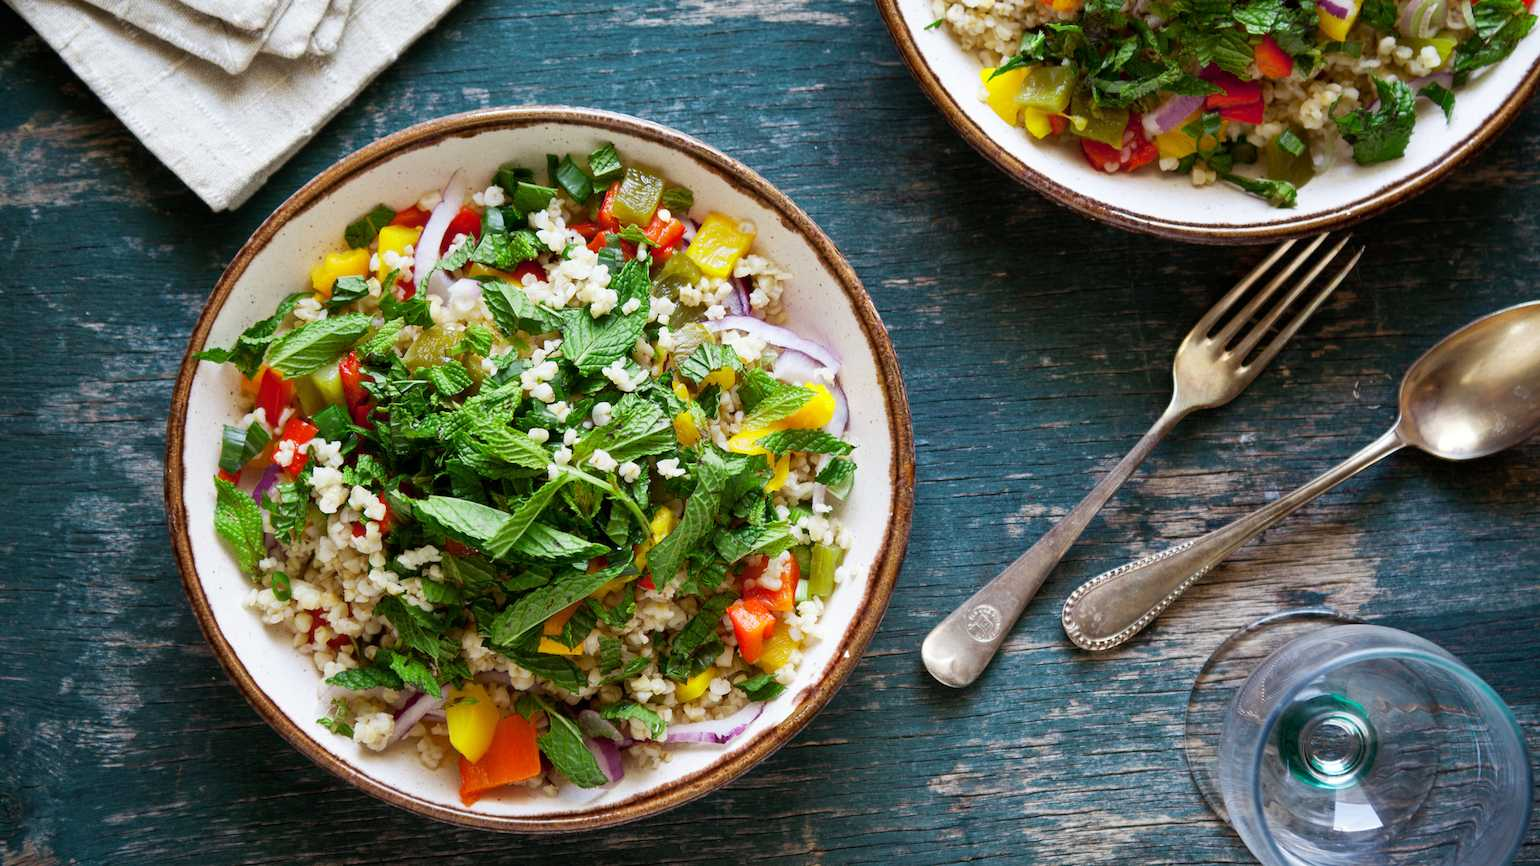 Grain salads for summer